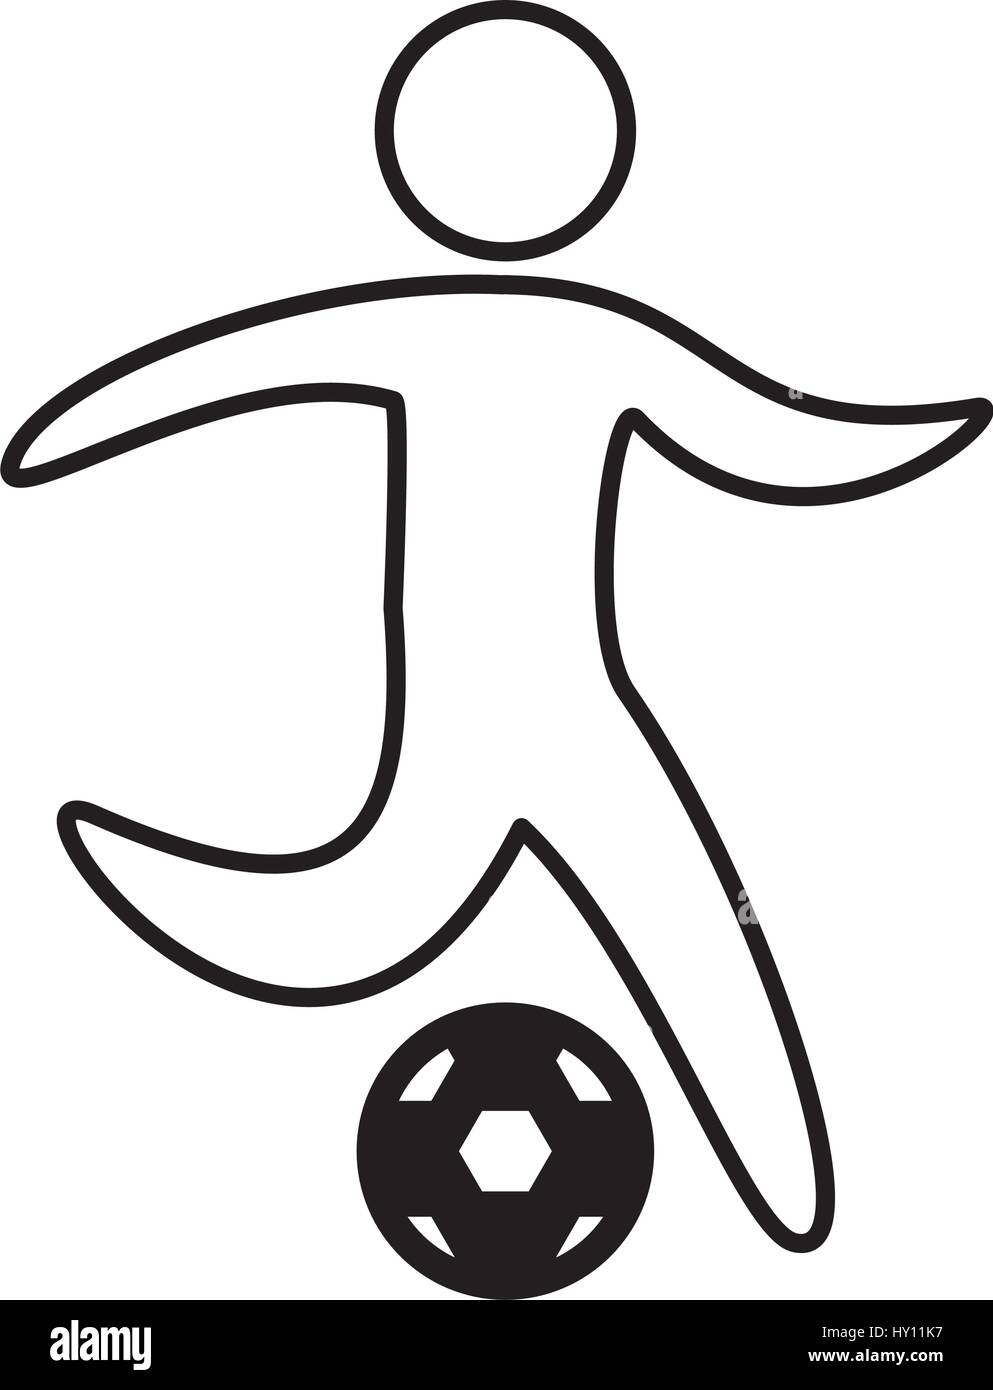 soccer player silhouette icon - Stock Image